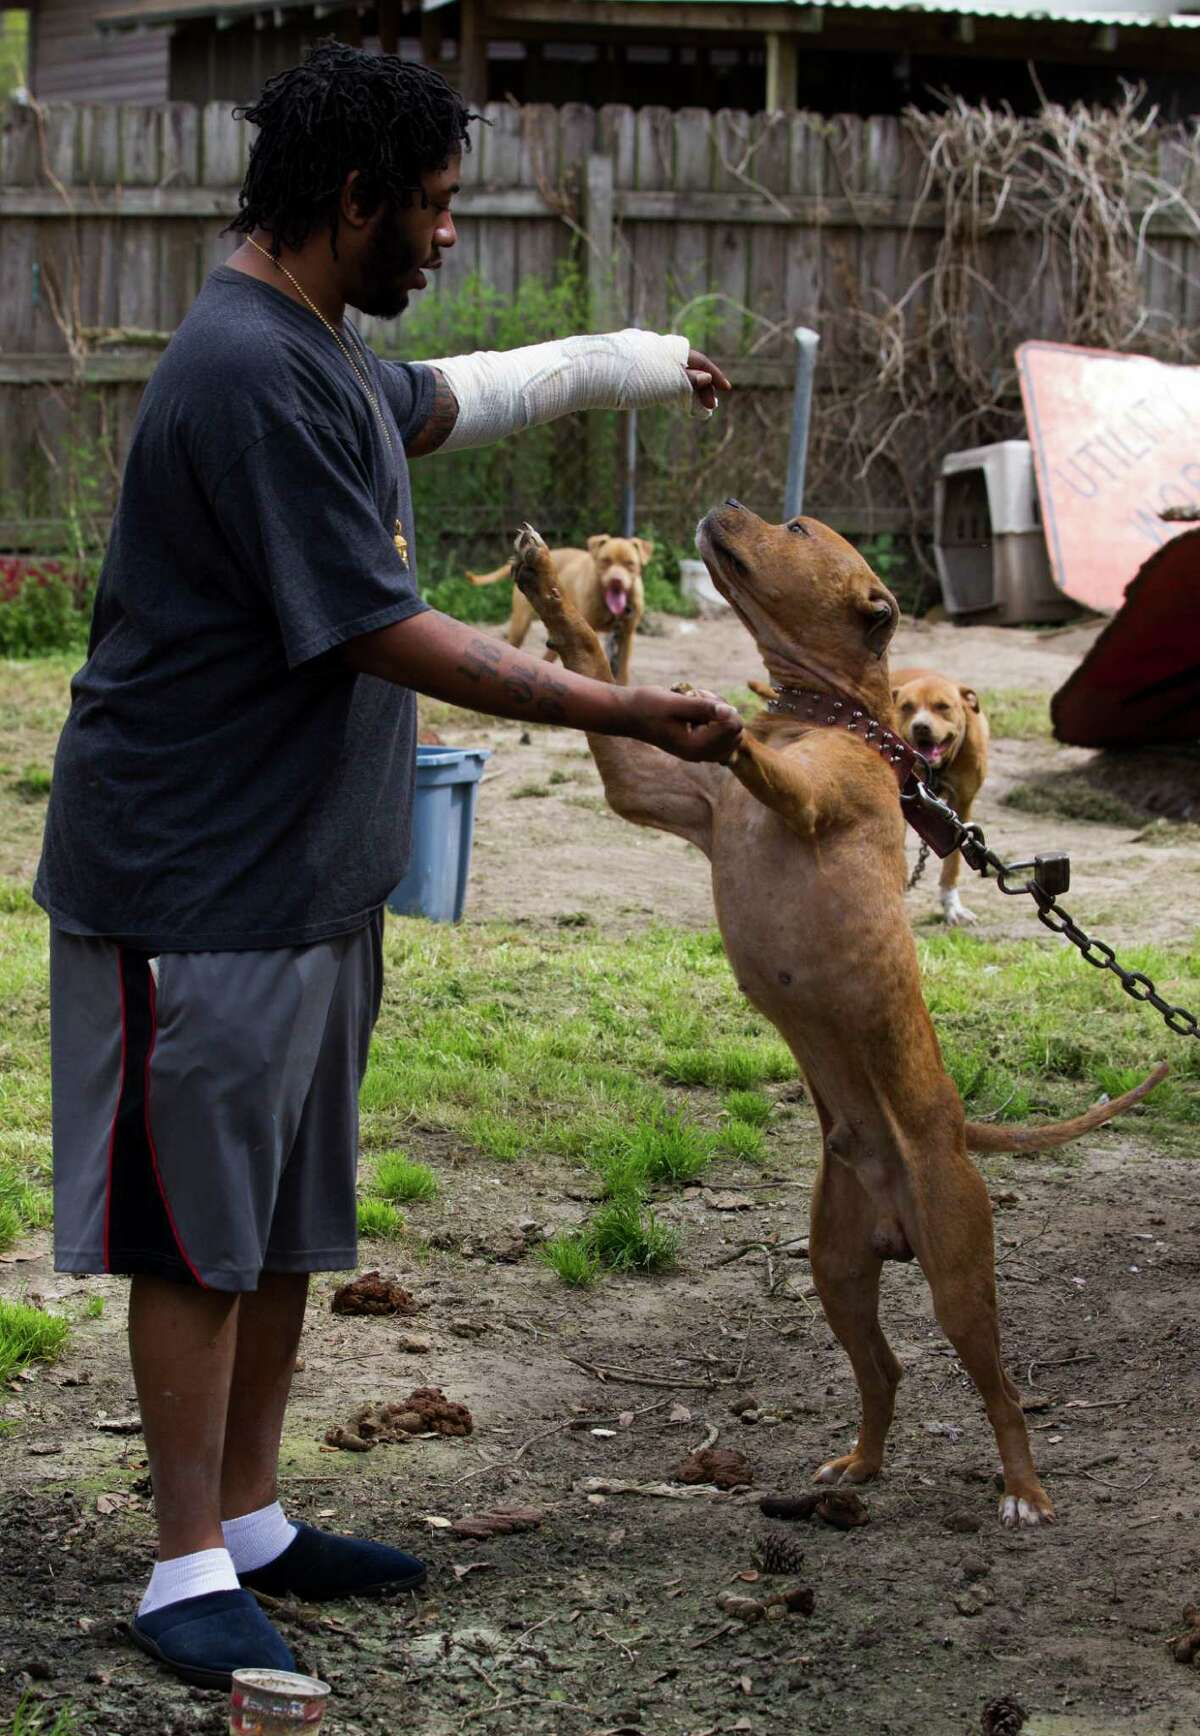 Neighbors have complained over the number of dogs Jeffery Harold Jr. has owned.